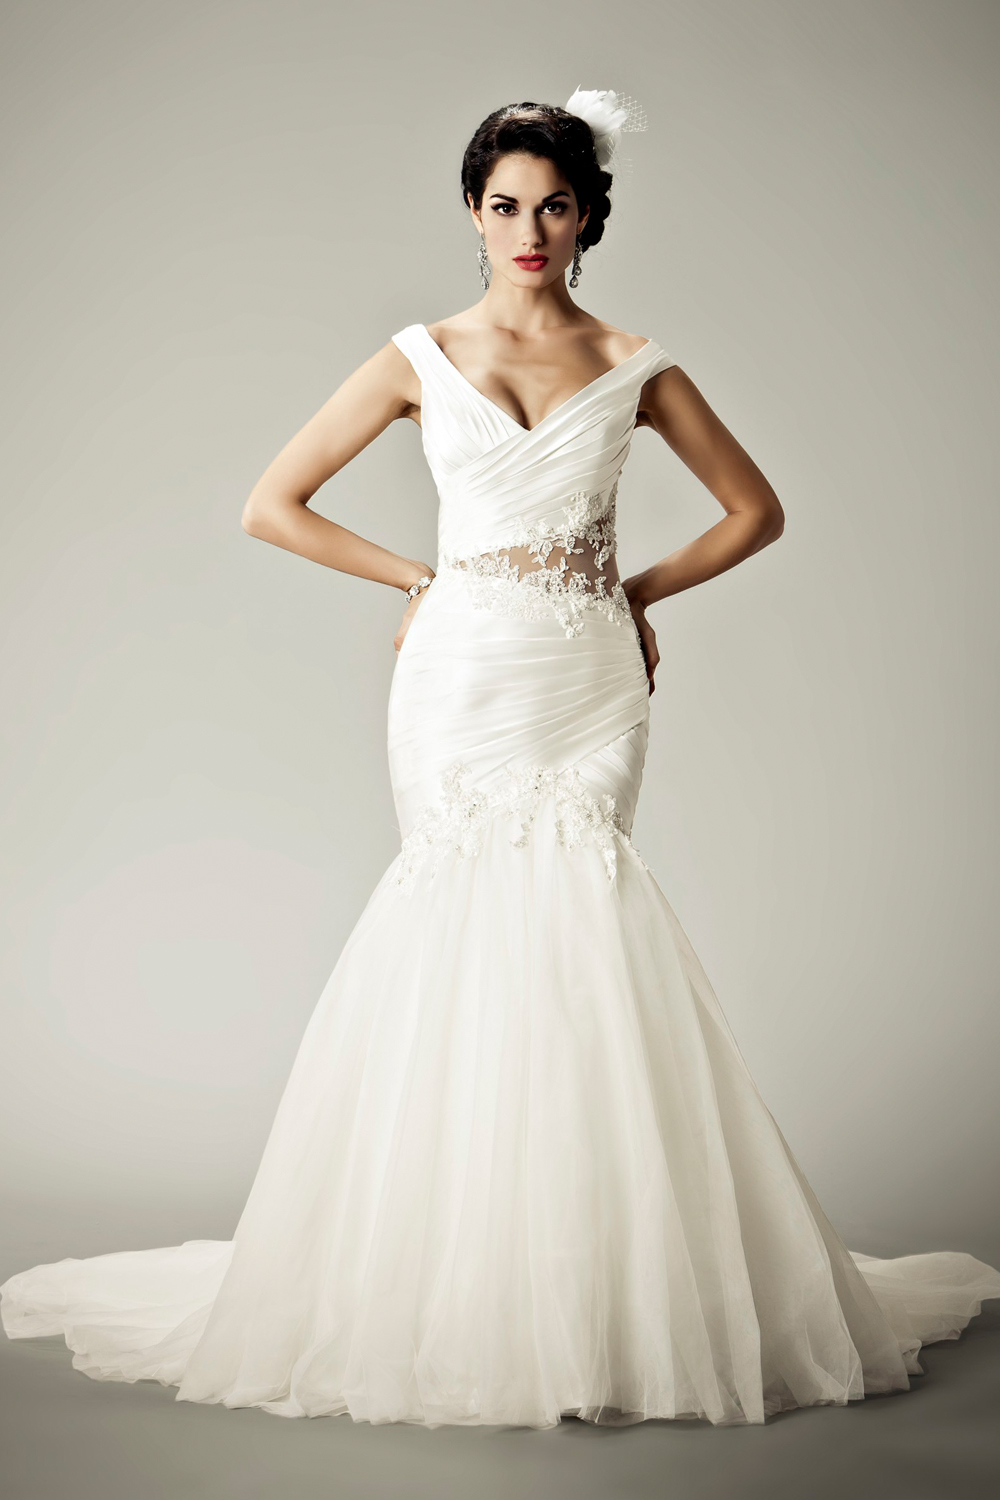 2012 wedding dresses matthew christopher bridal gown for A pretty wedding dress